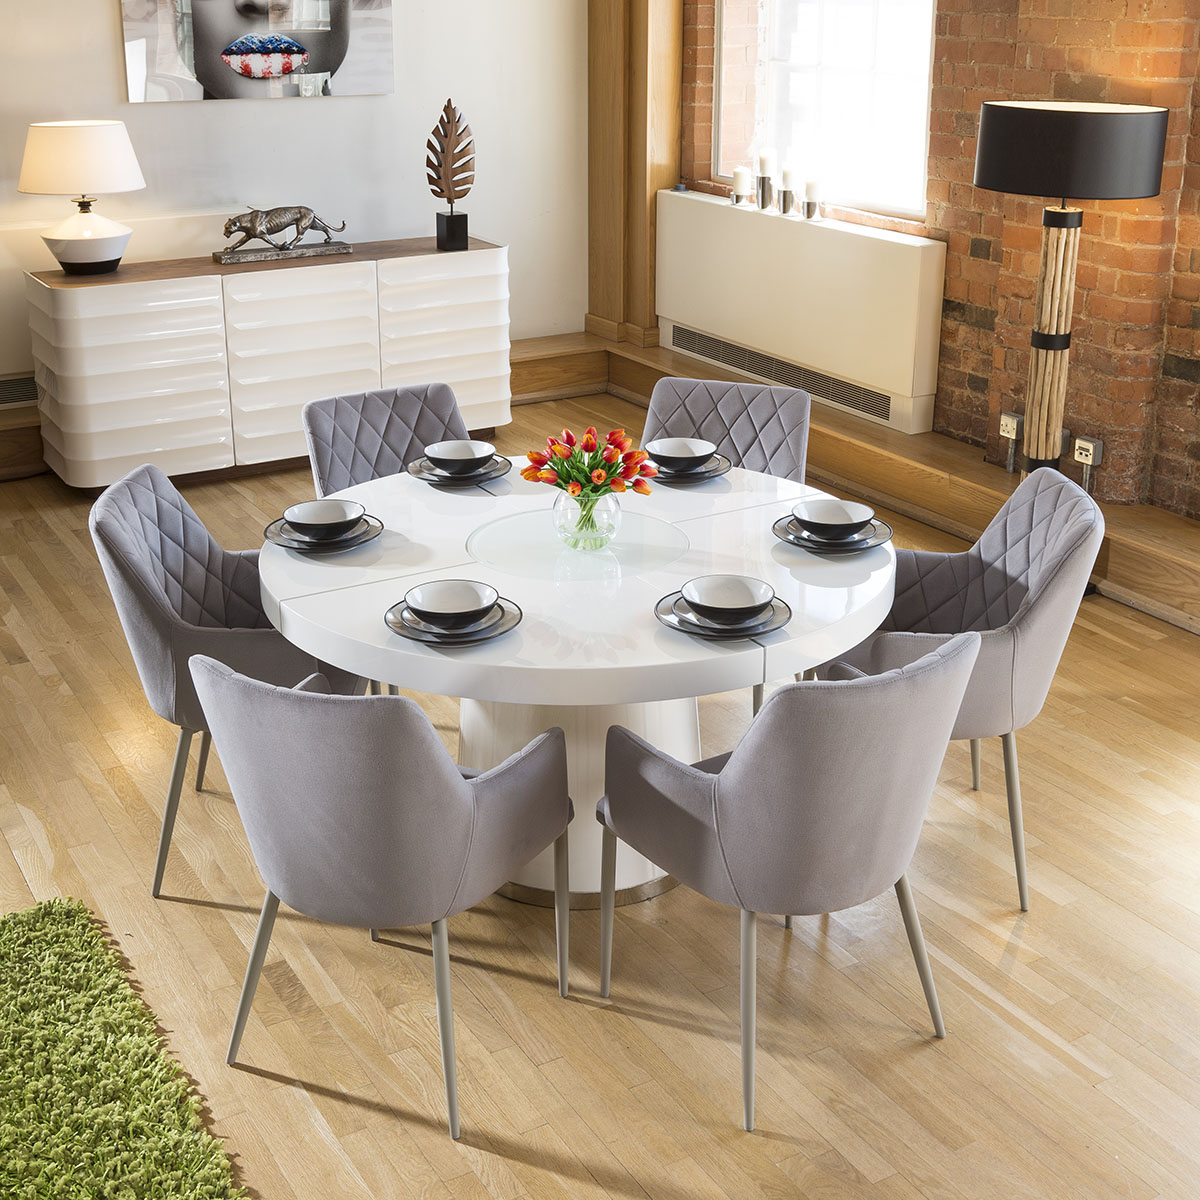 Details about Large White Circular 1.4 Dining Table +6 Ice Grey Carver  Chairs